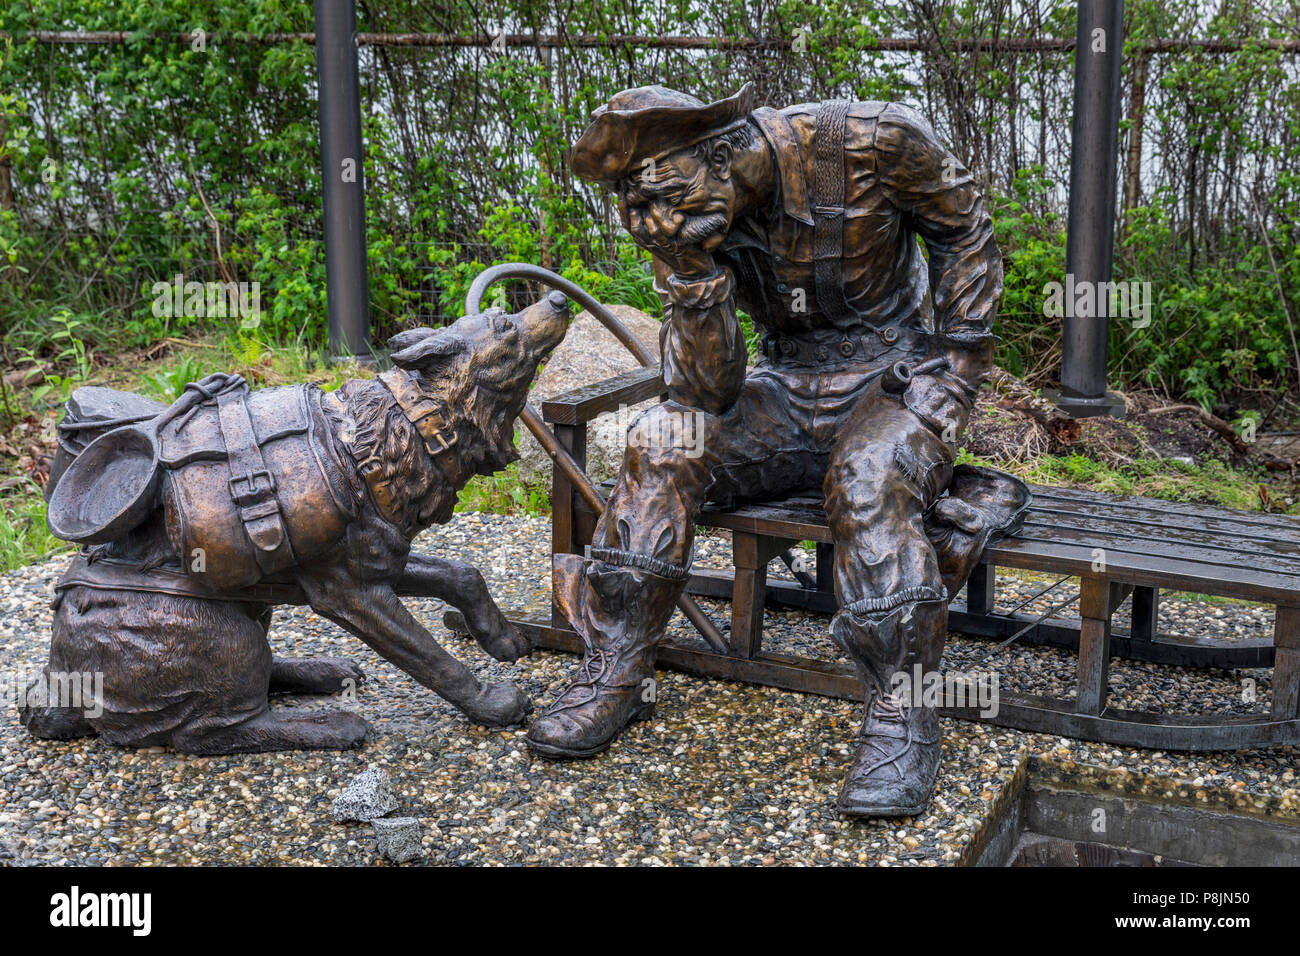 Prospector and  dog sculpture, Skagway, Alaska, United States, USA, Tuesday, May 22, 2018. - Stock Image